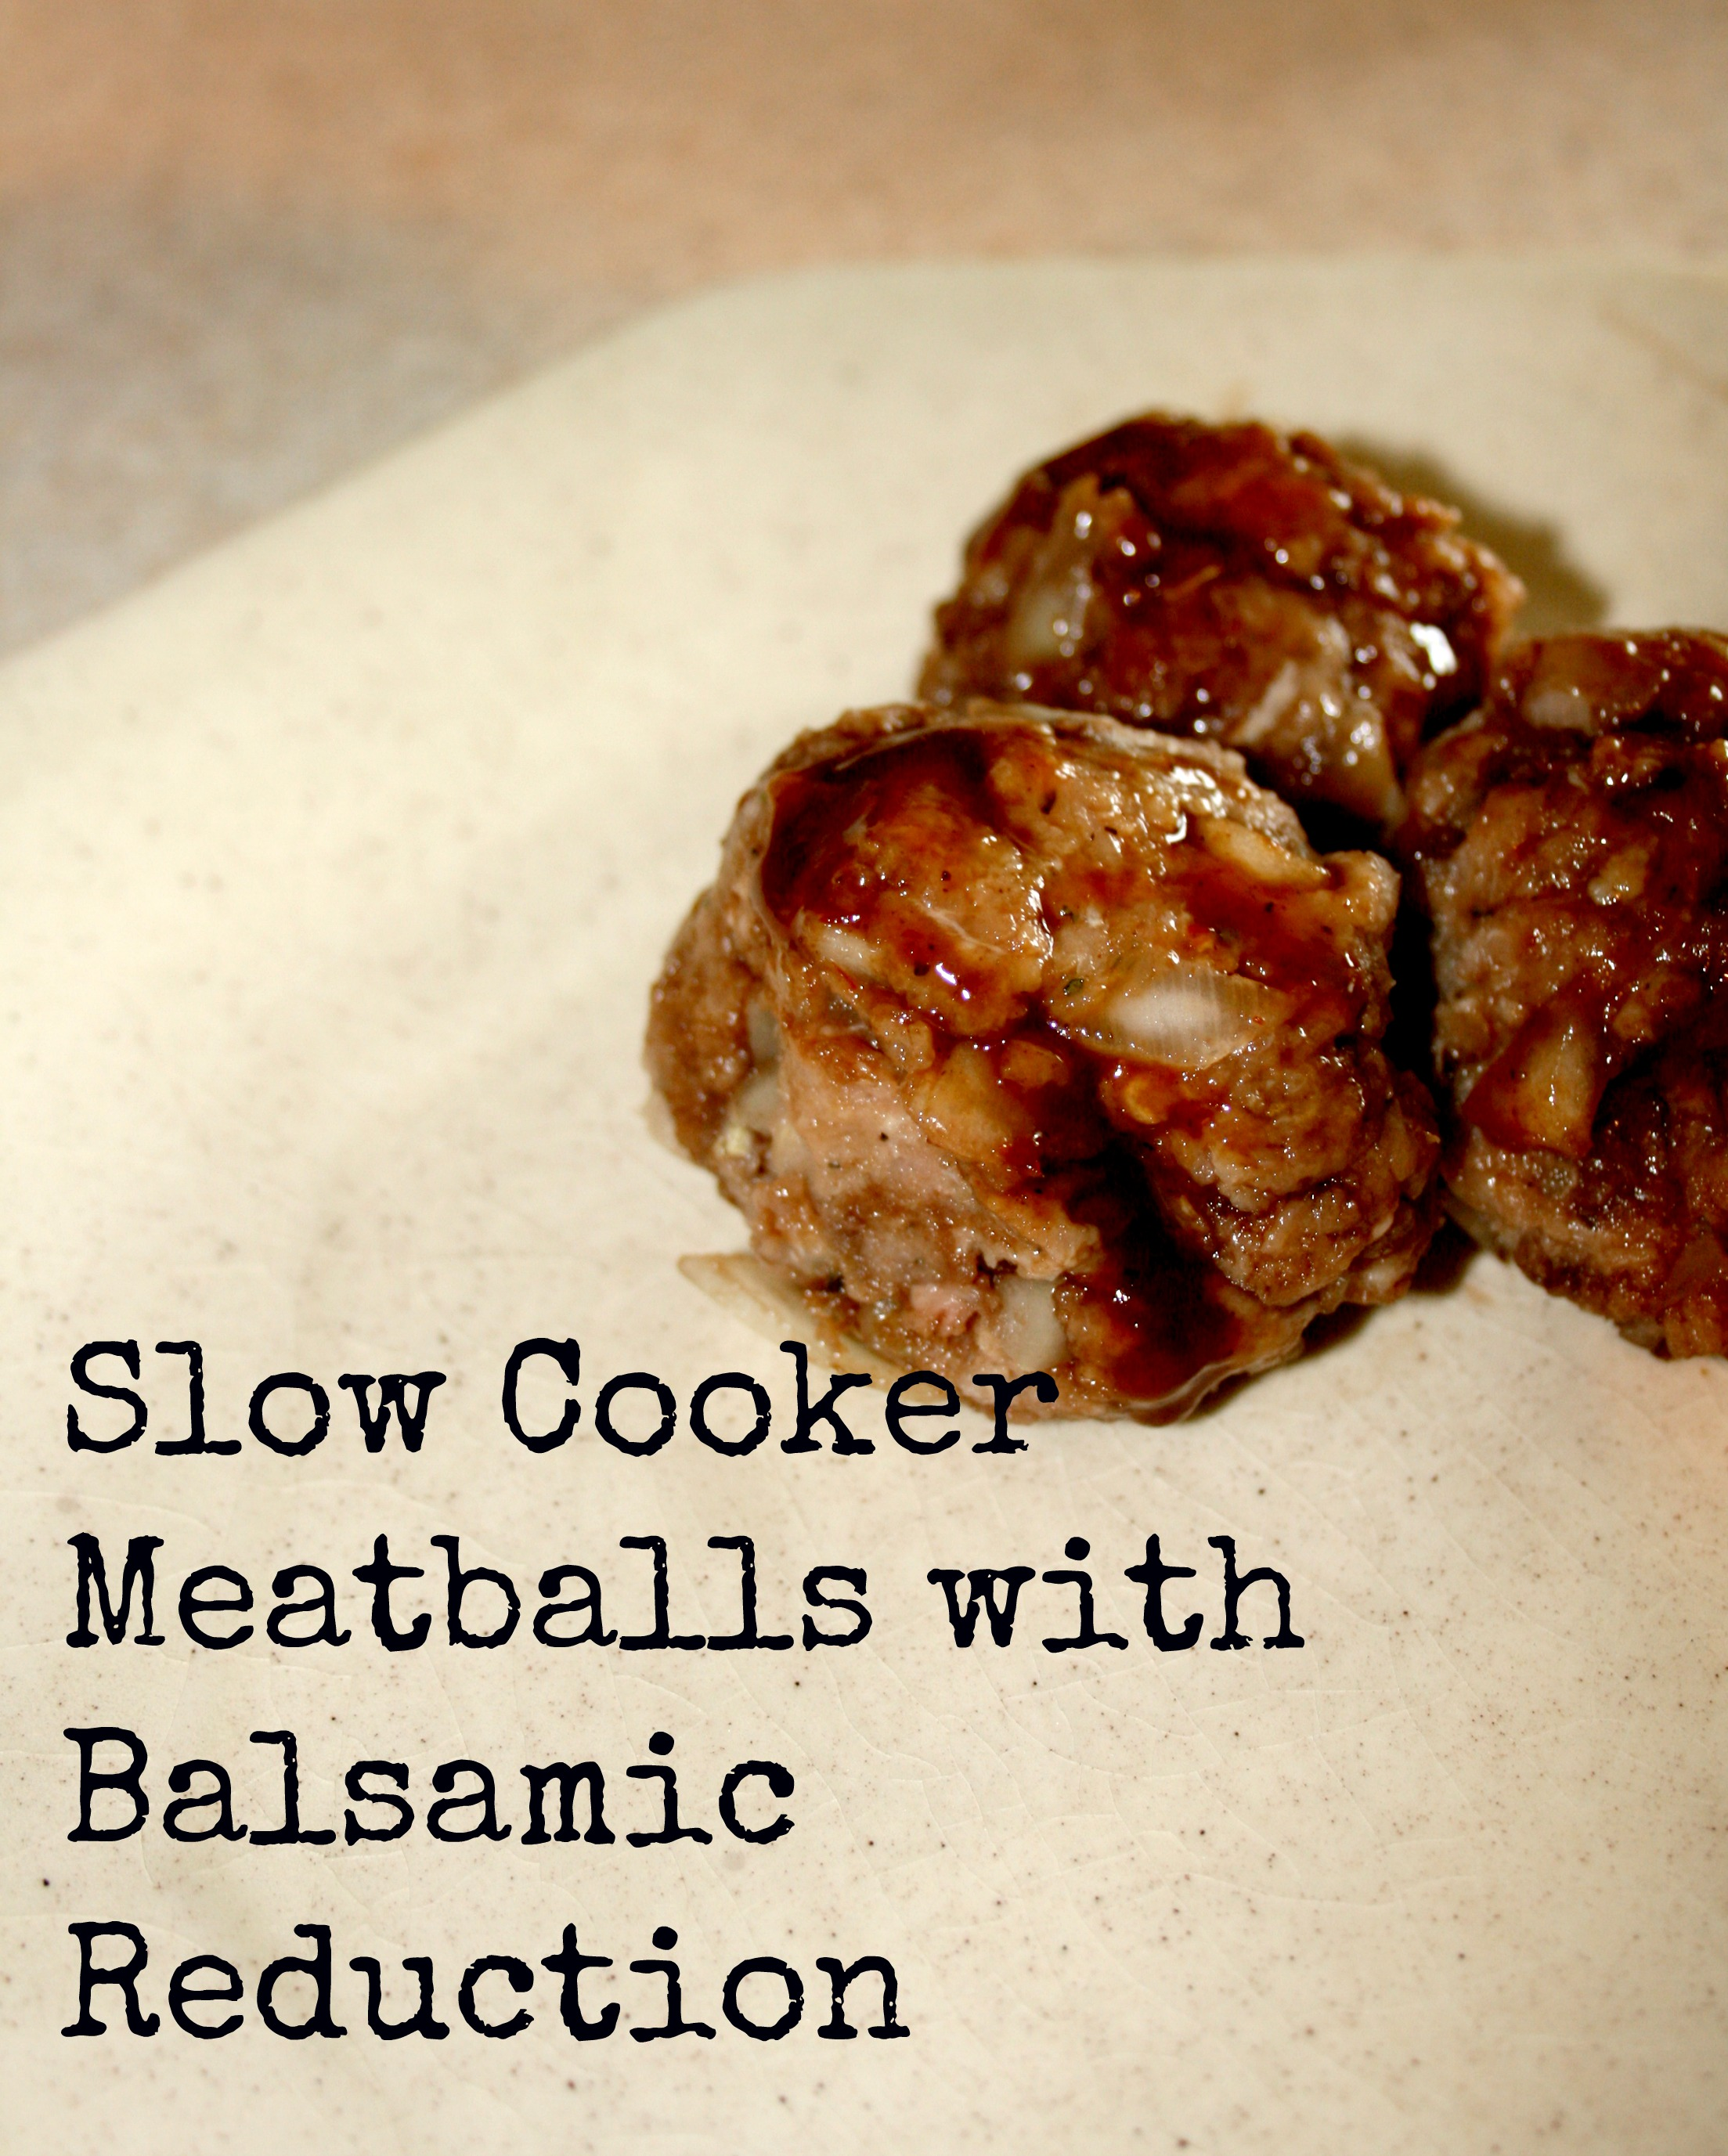 Slow Cooker Meatballs with Balsamic Reduction